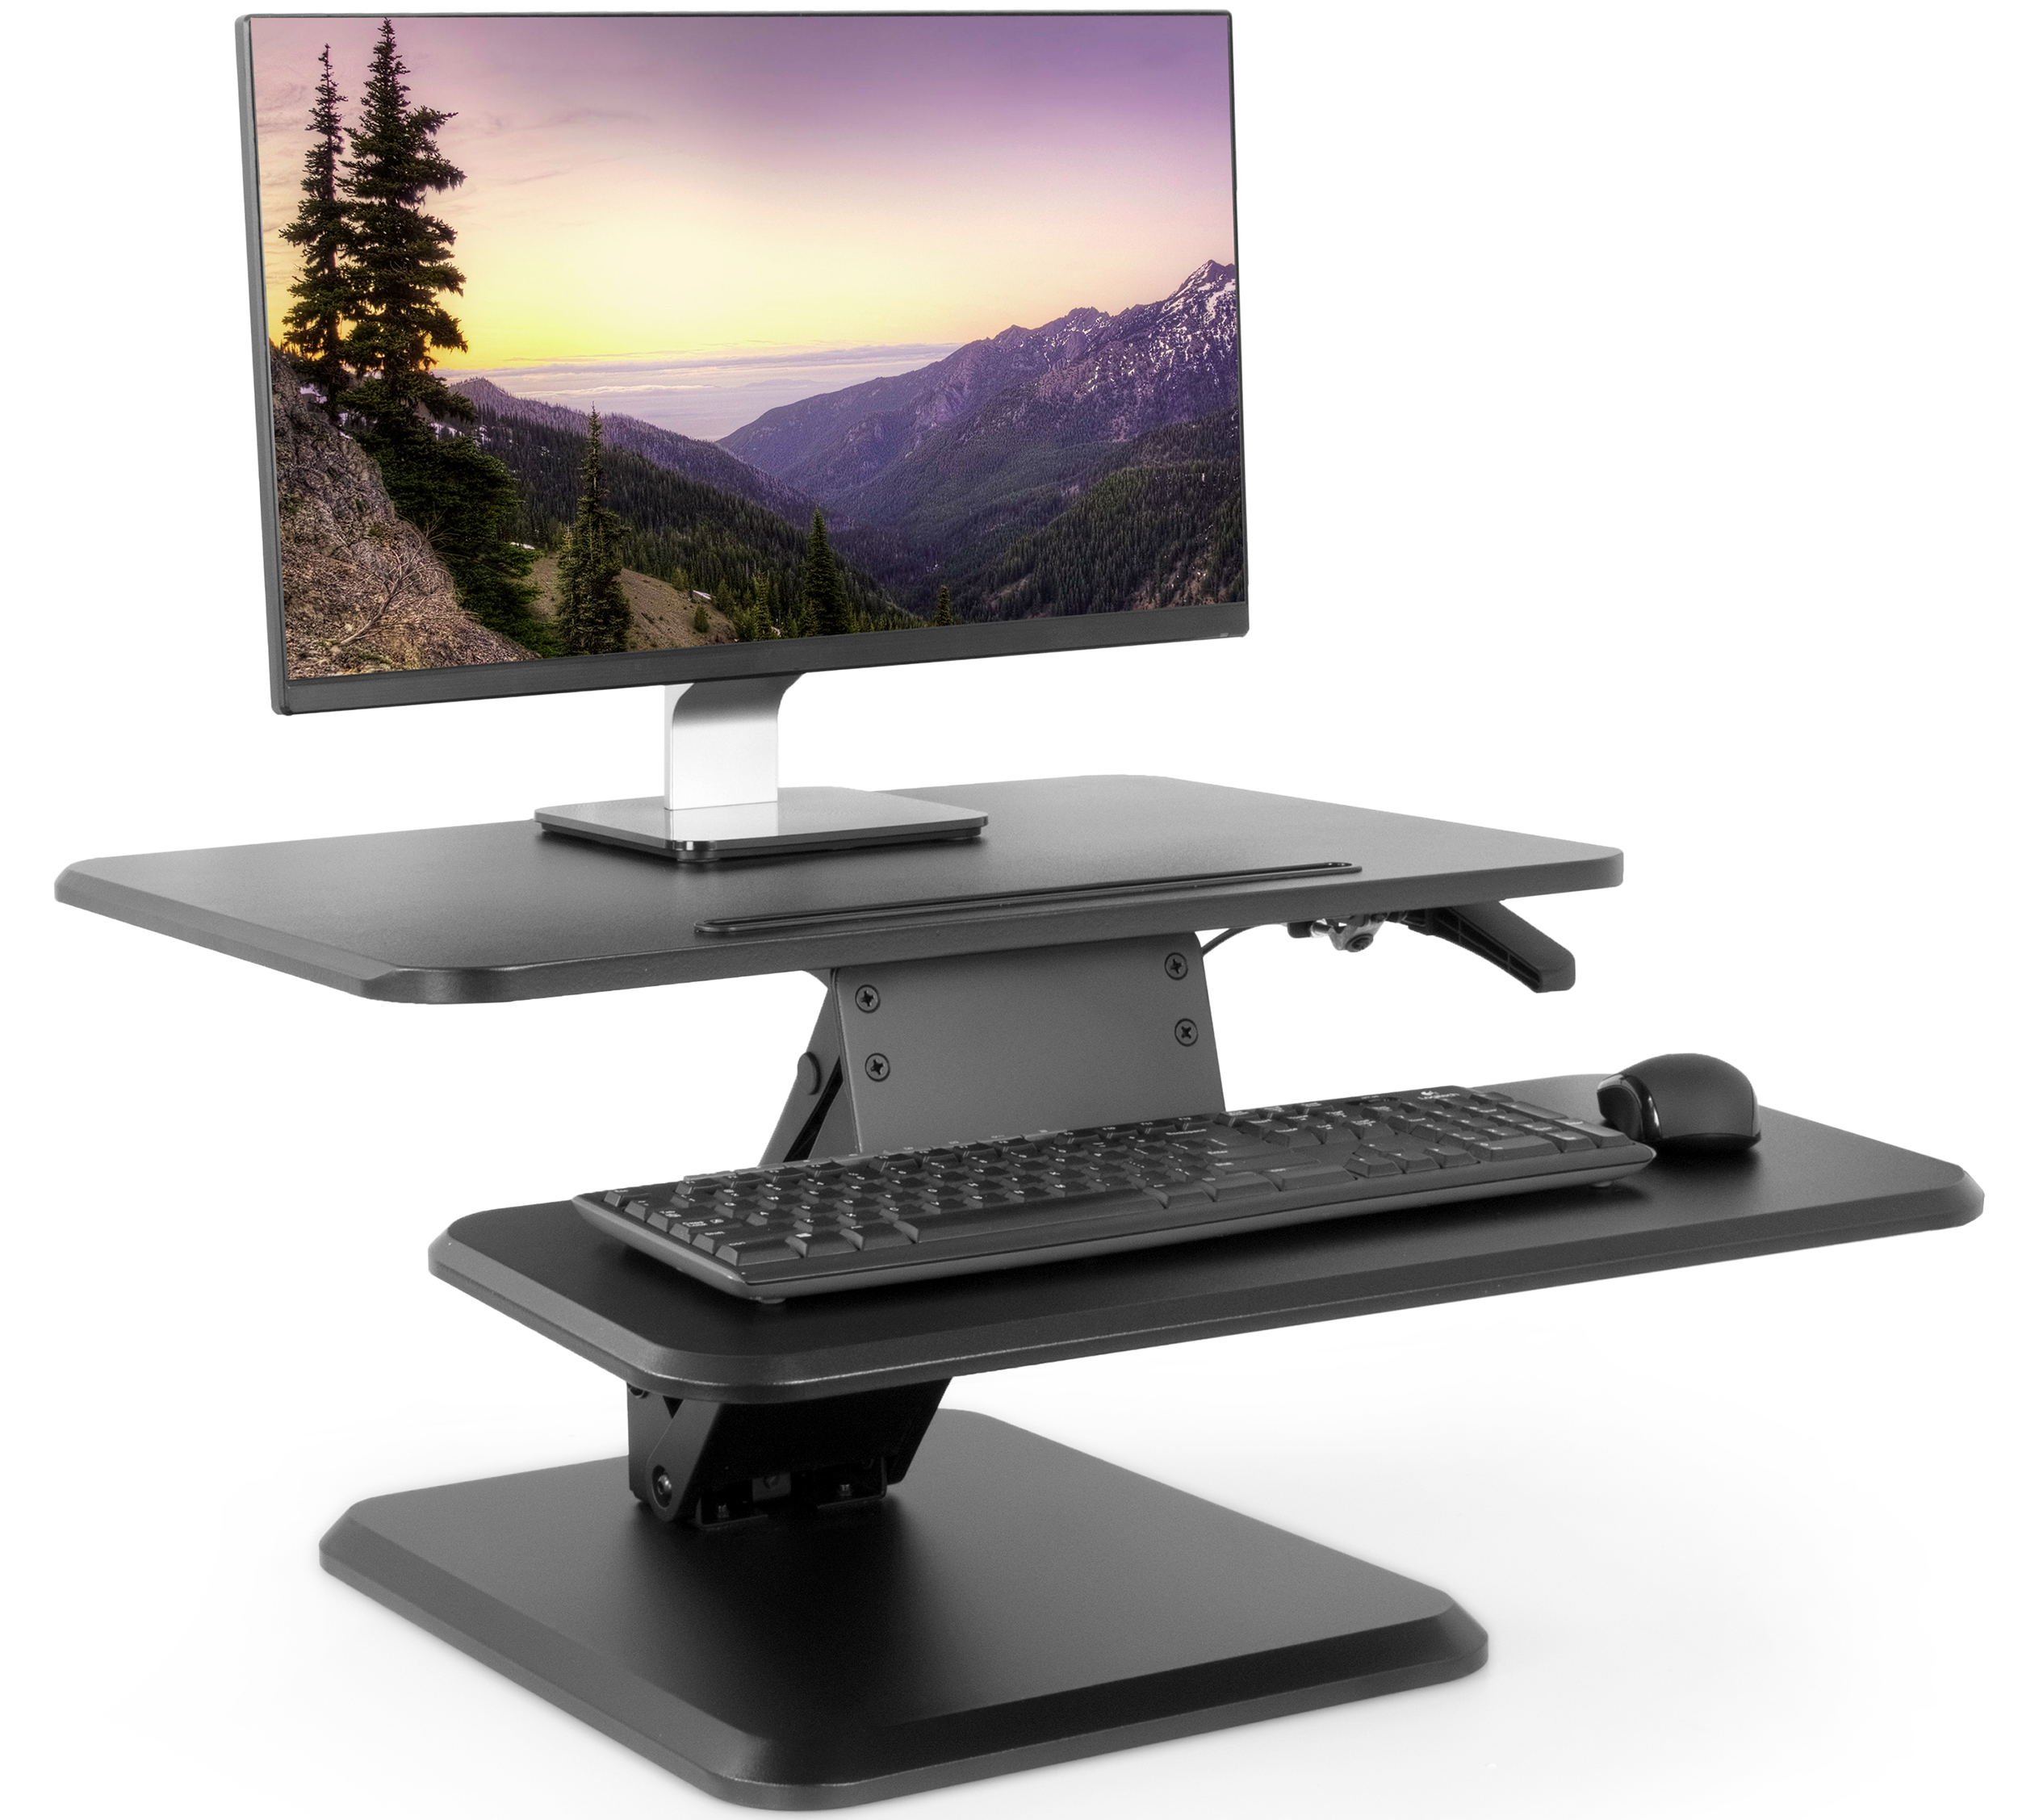 "VIVO Small Height Adjustable Standing Desk Gas Spring Monitor Riser - 25"" Tabletop Sit to Stand Workstation (DESK-V001G)"